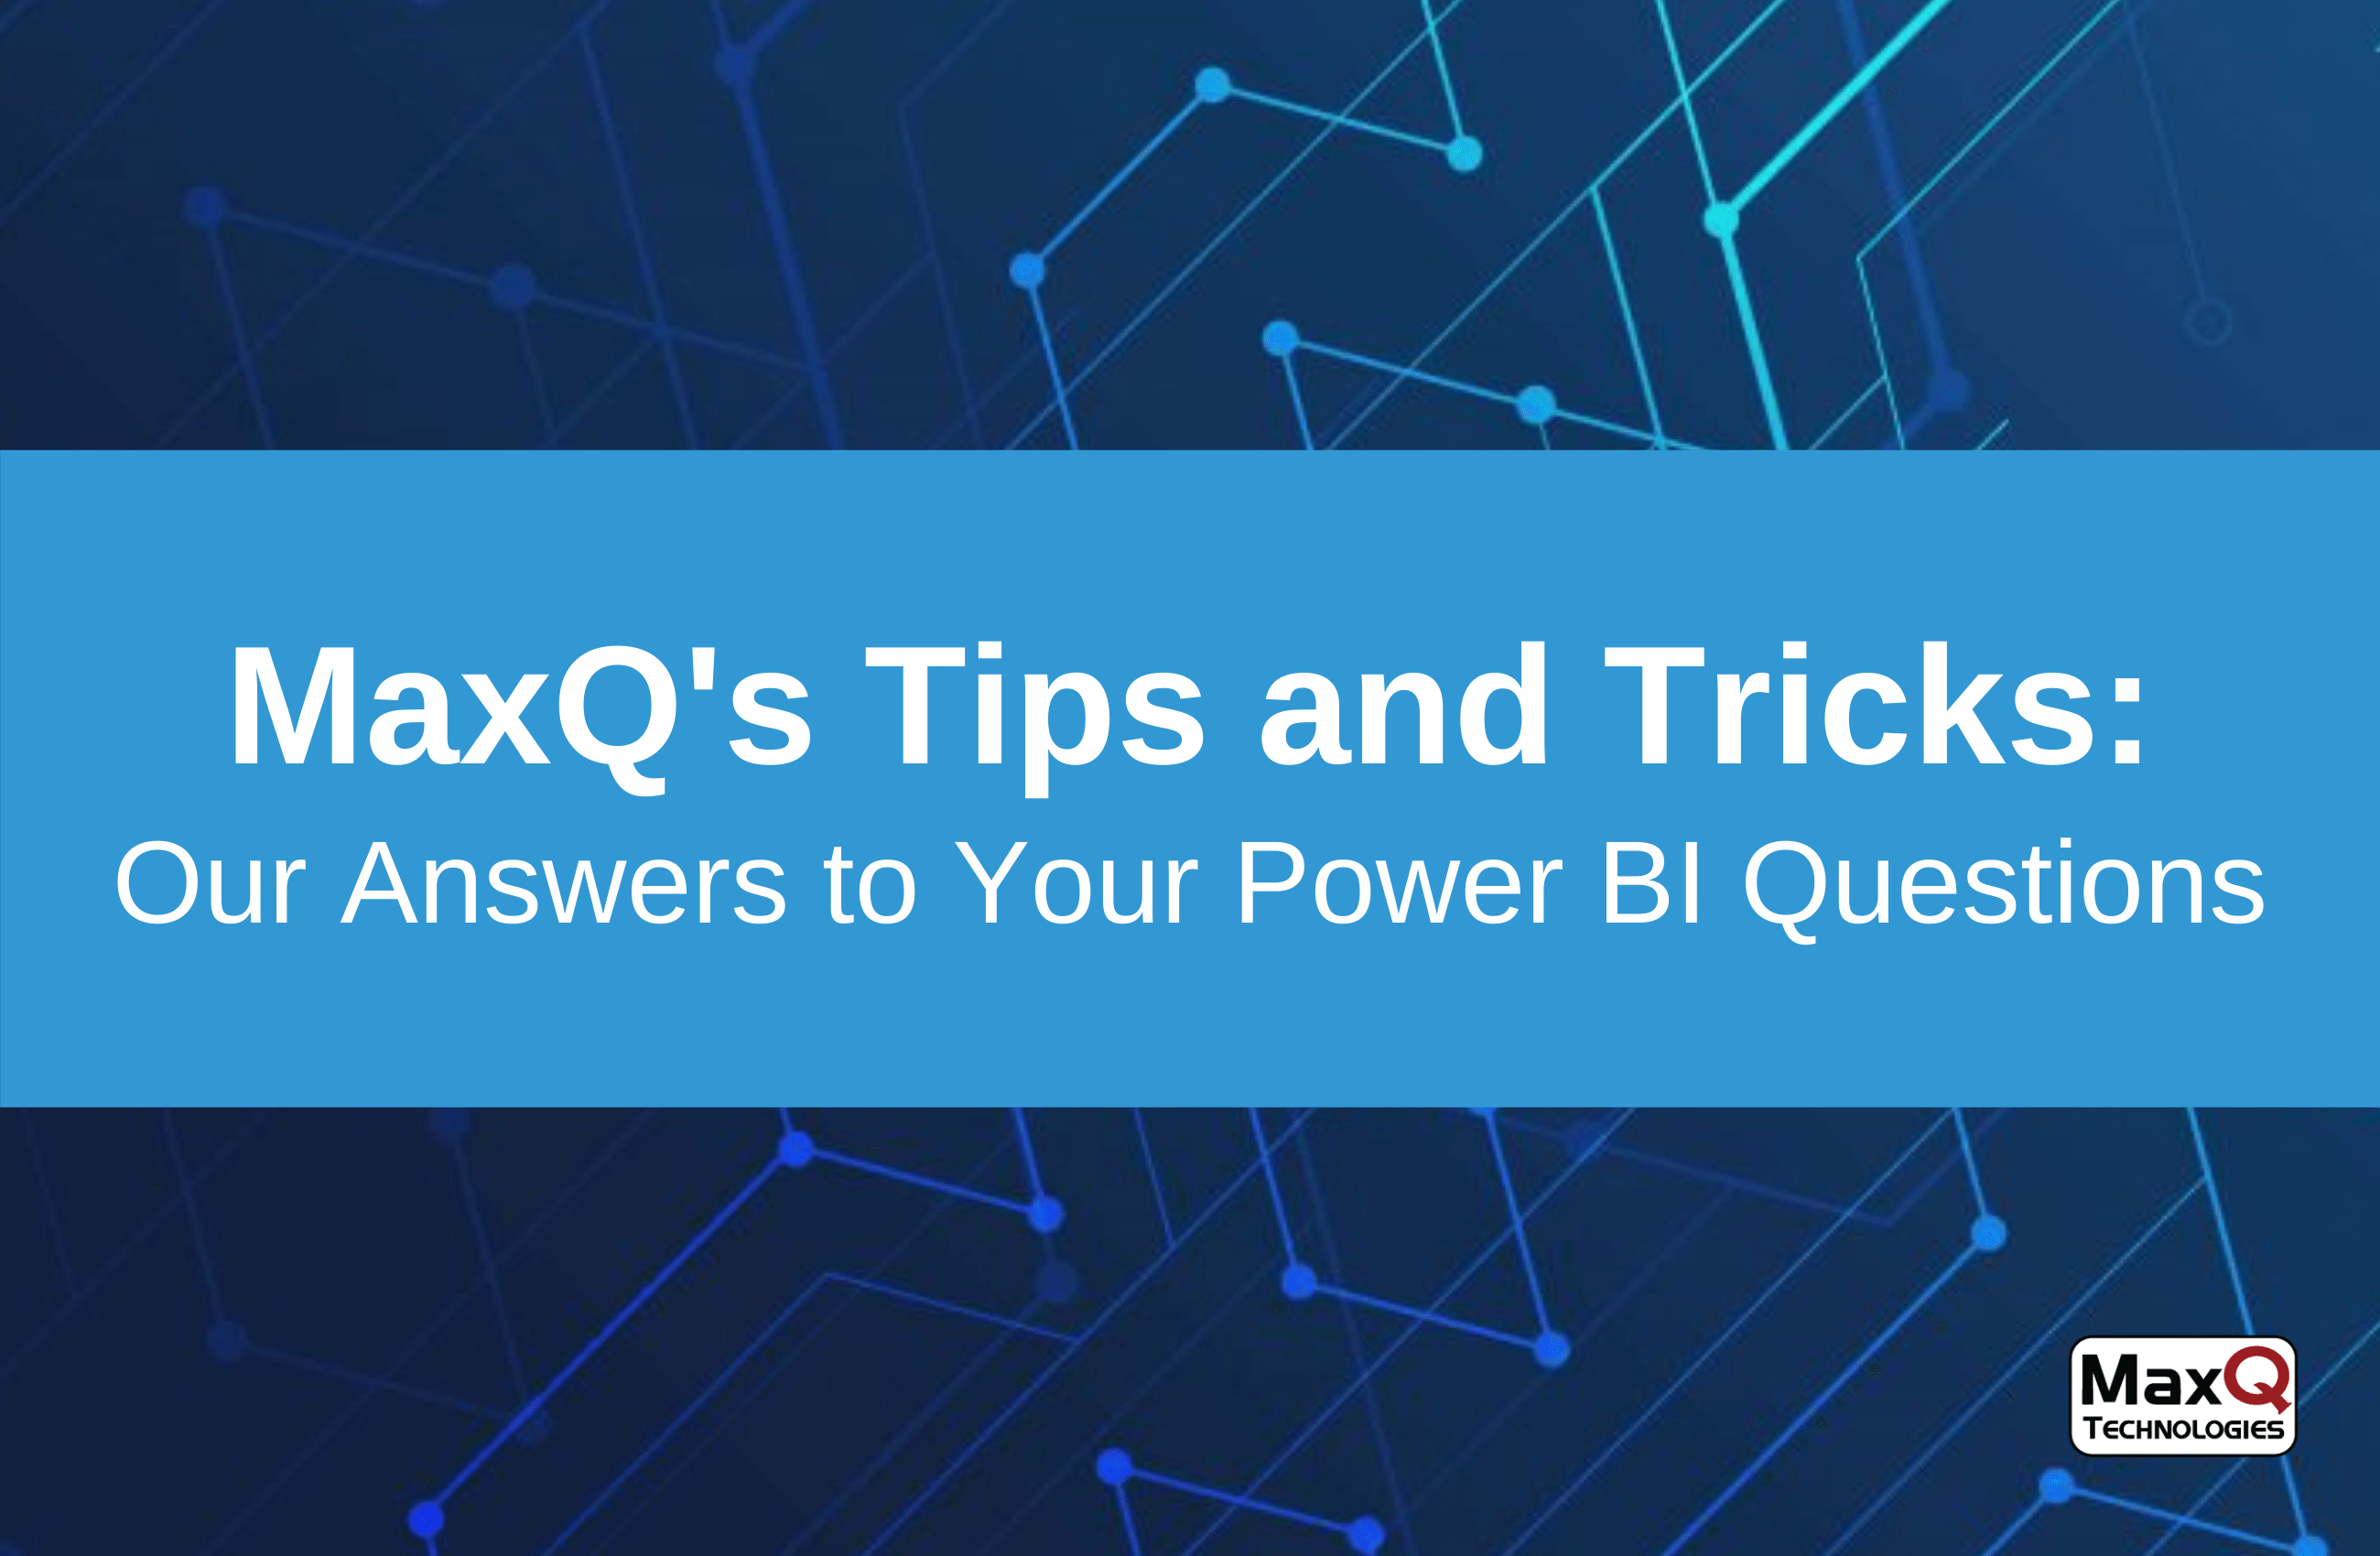 Our Answers to Your Power BI Questions